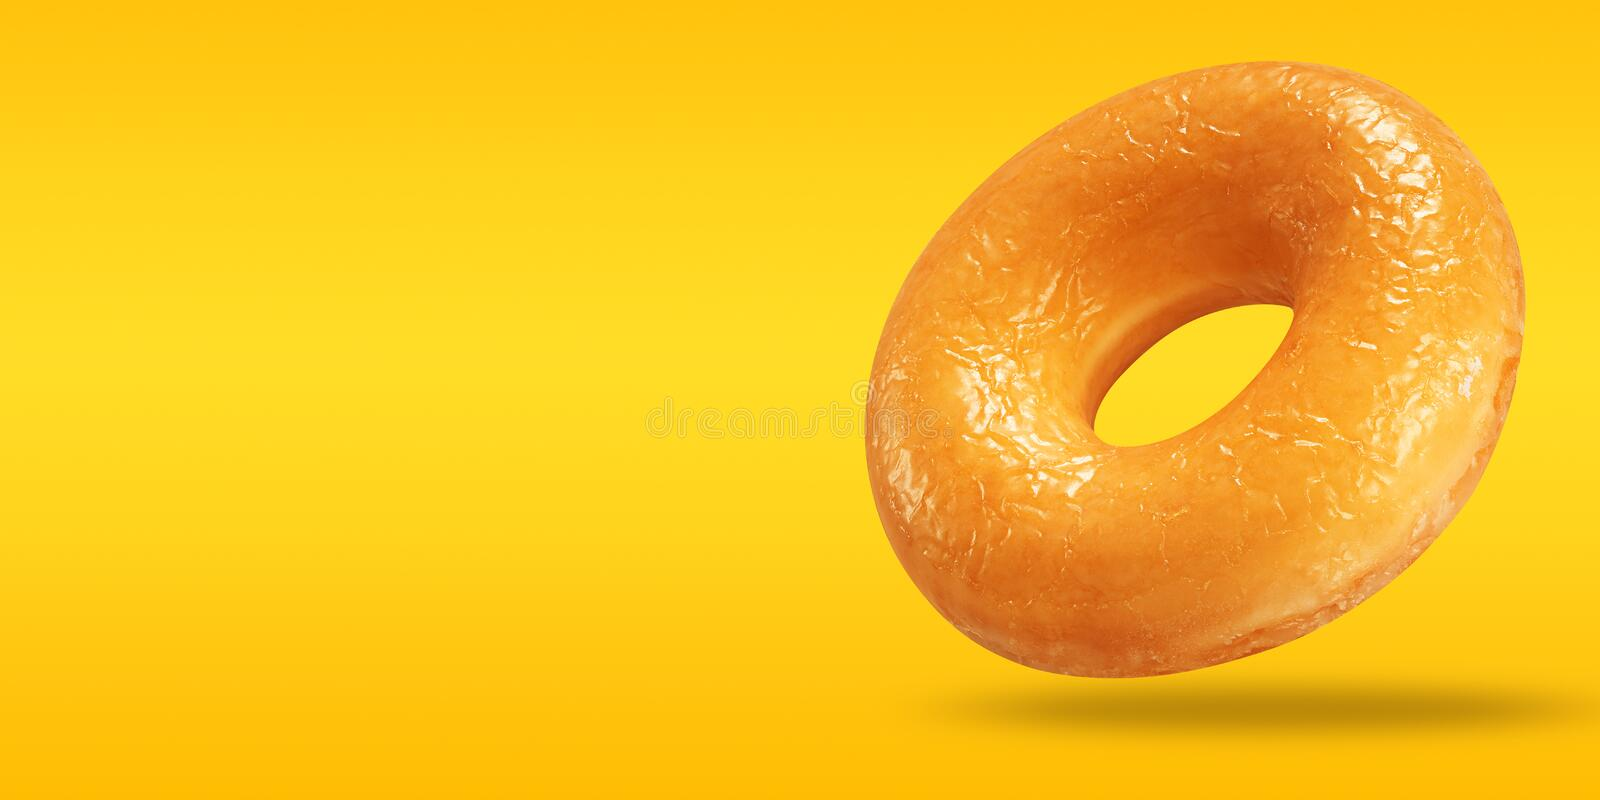 Creative sweet food concept. Donut glazed with copy space on pastel yellow and orange background.  royalty free stock photo